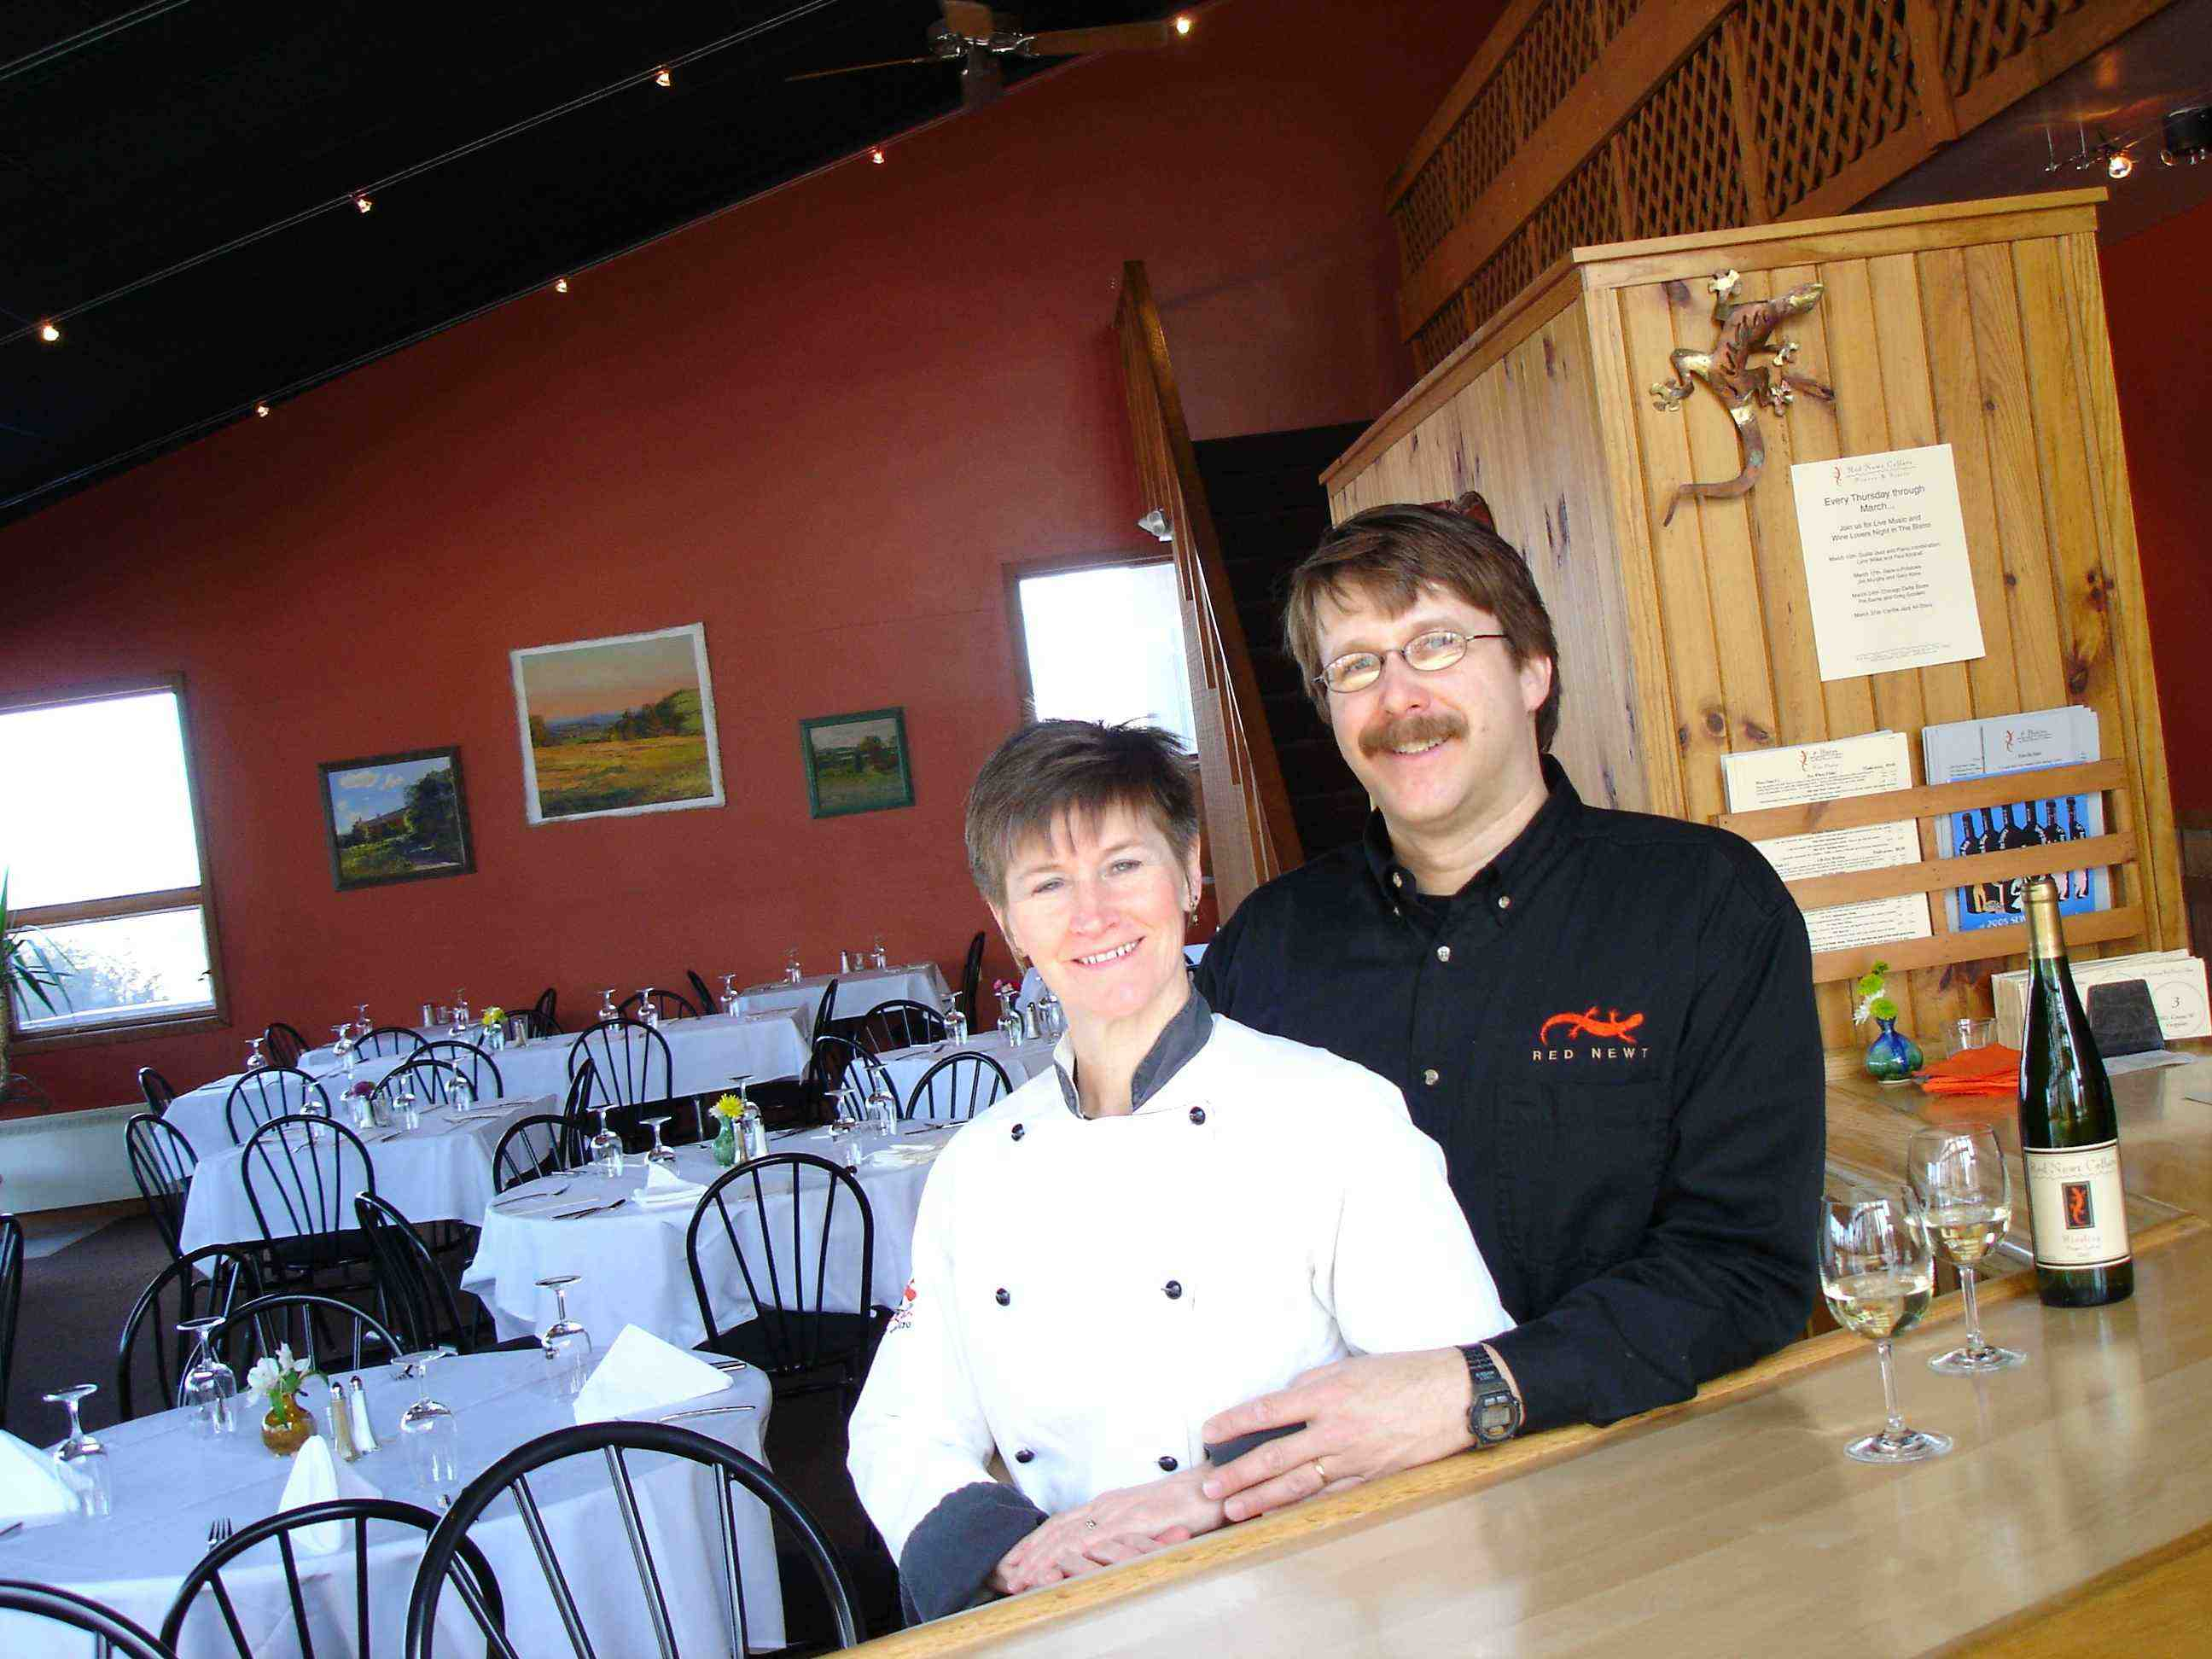 The Best Farm-Fresh Local Cuisine in The Finger Lakes